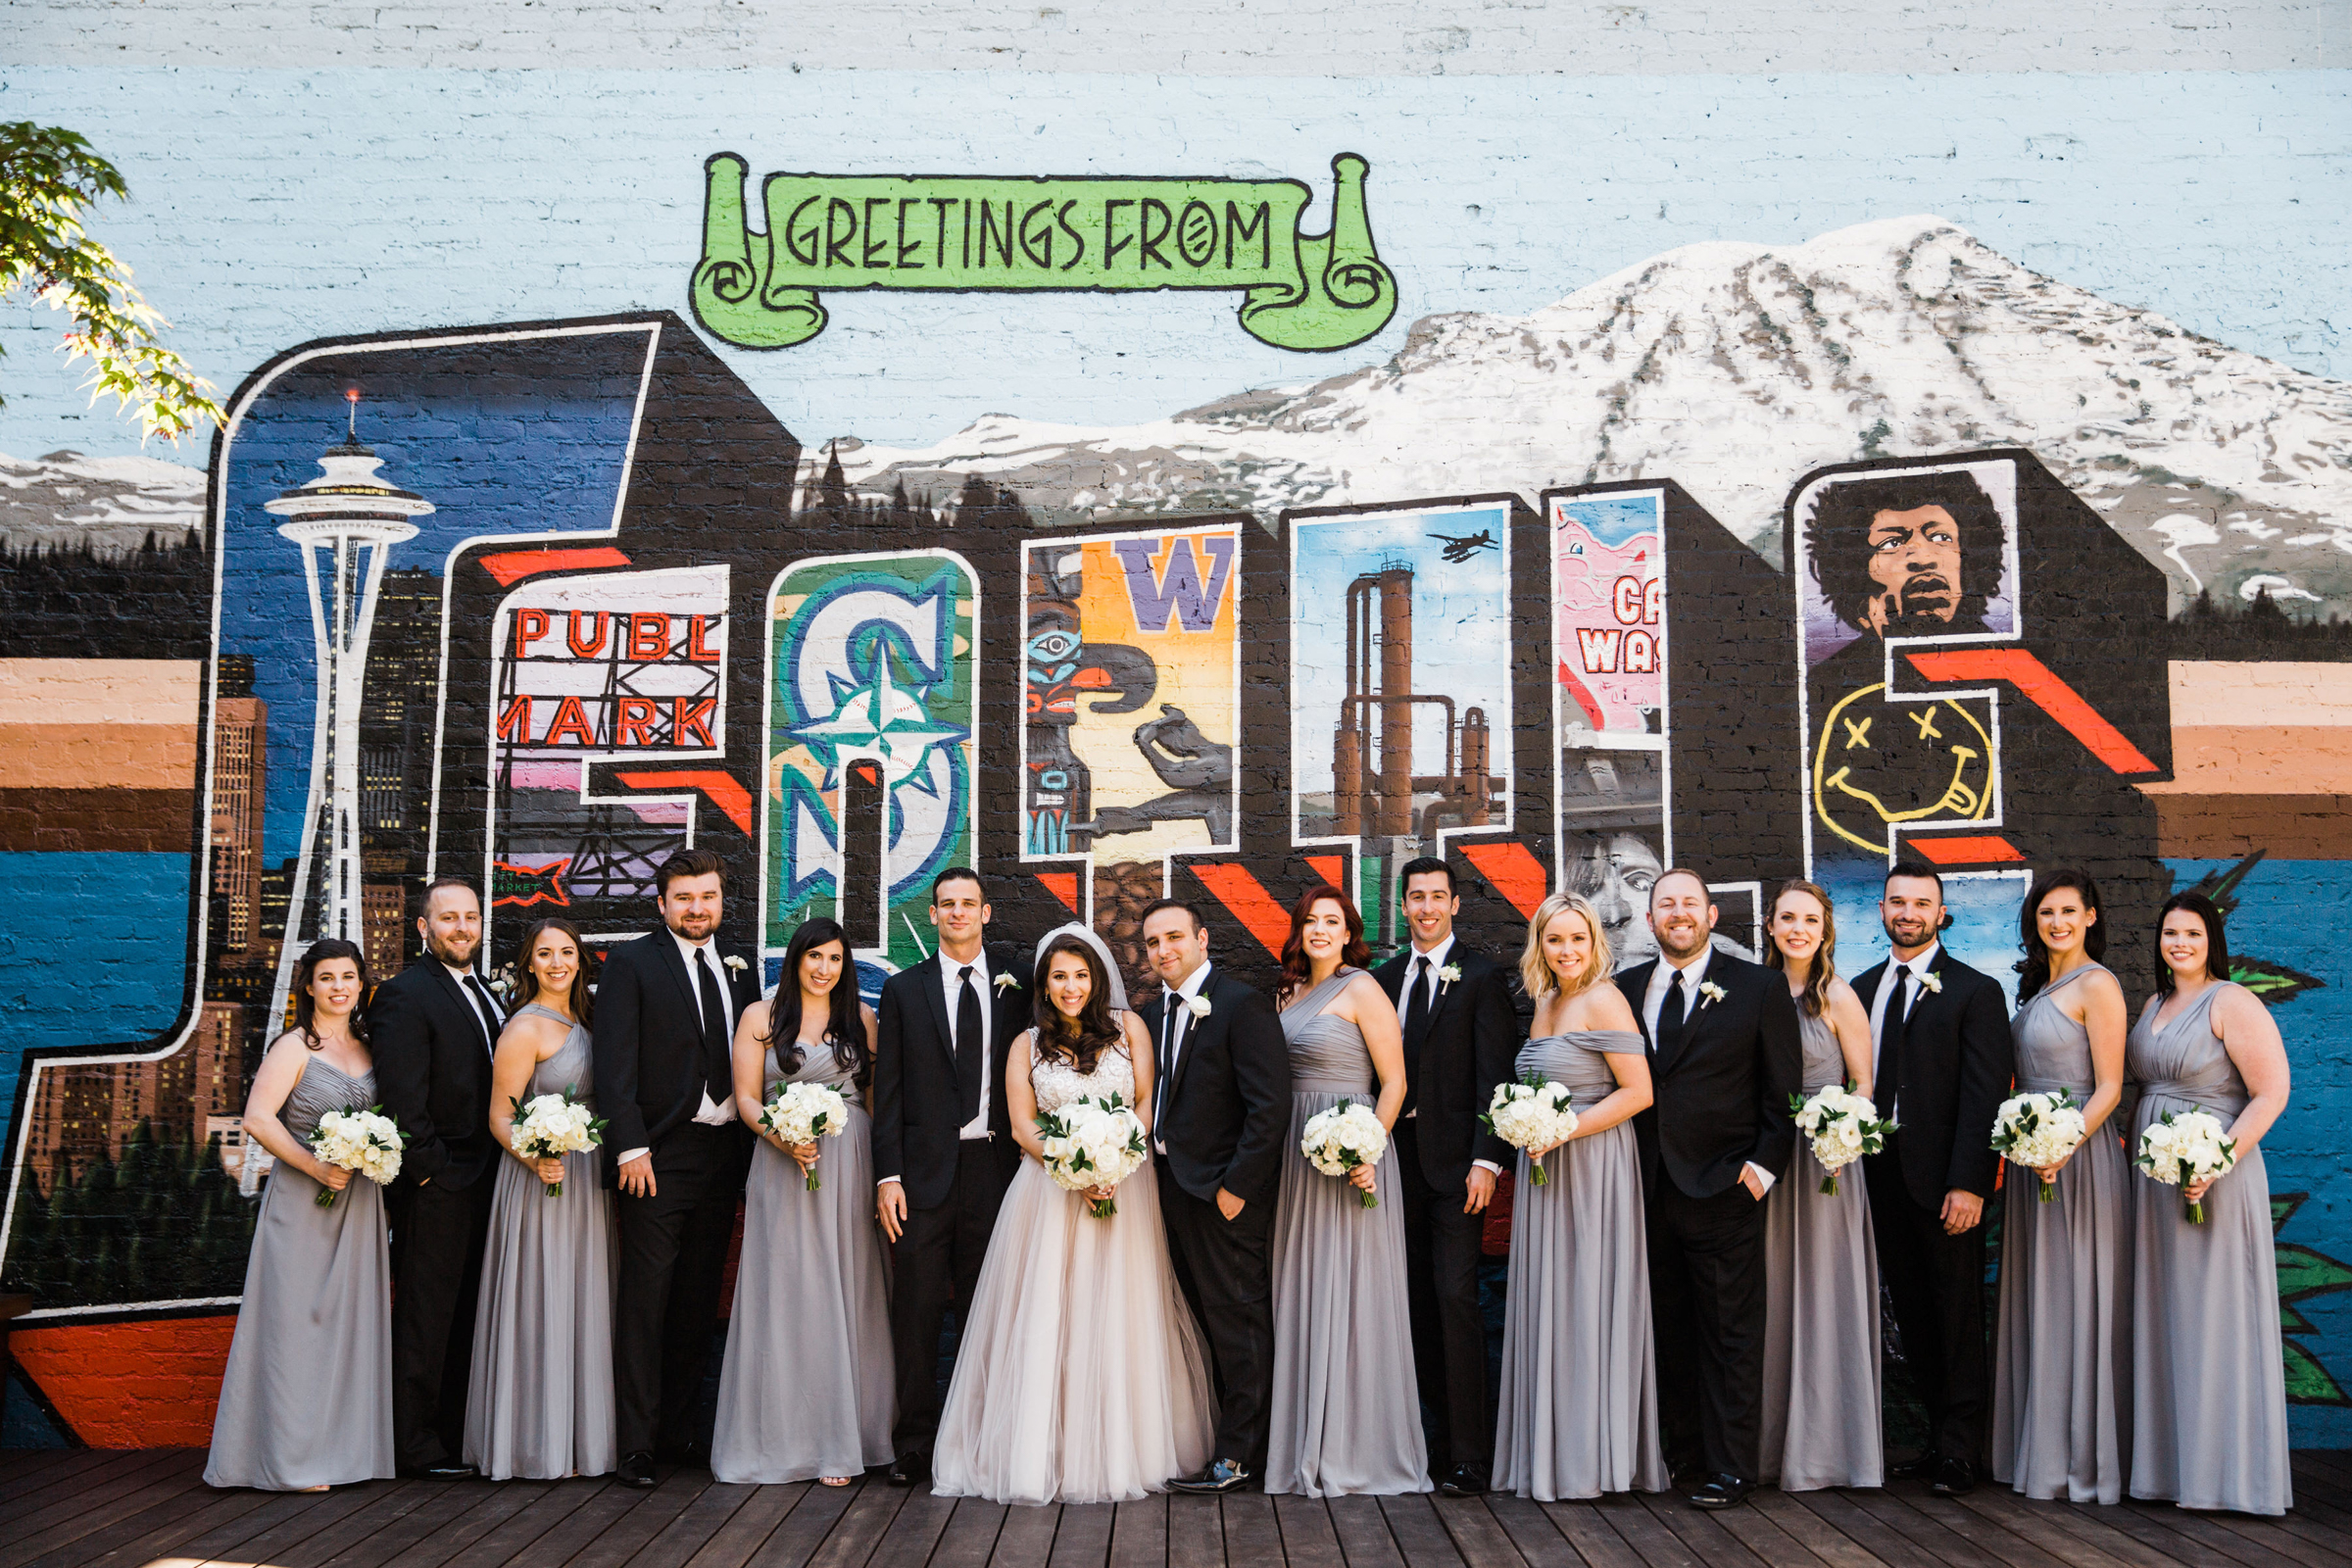 Bridal party wearing lavender gowns at Seattle mural - photo by Stephanie Cristalli Photography